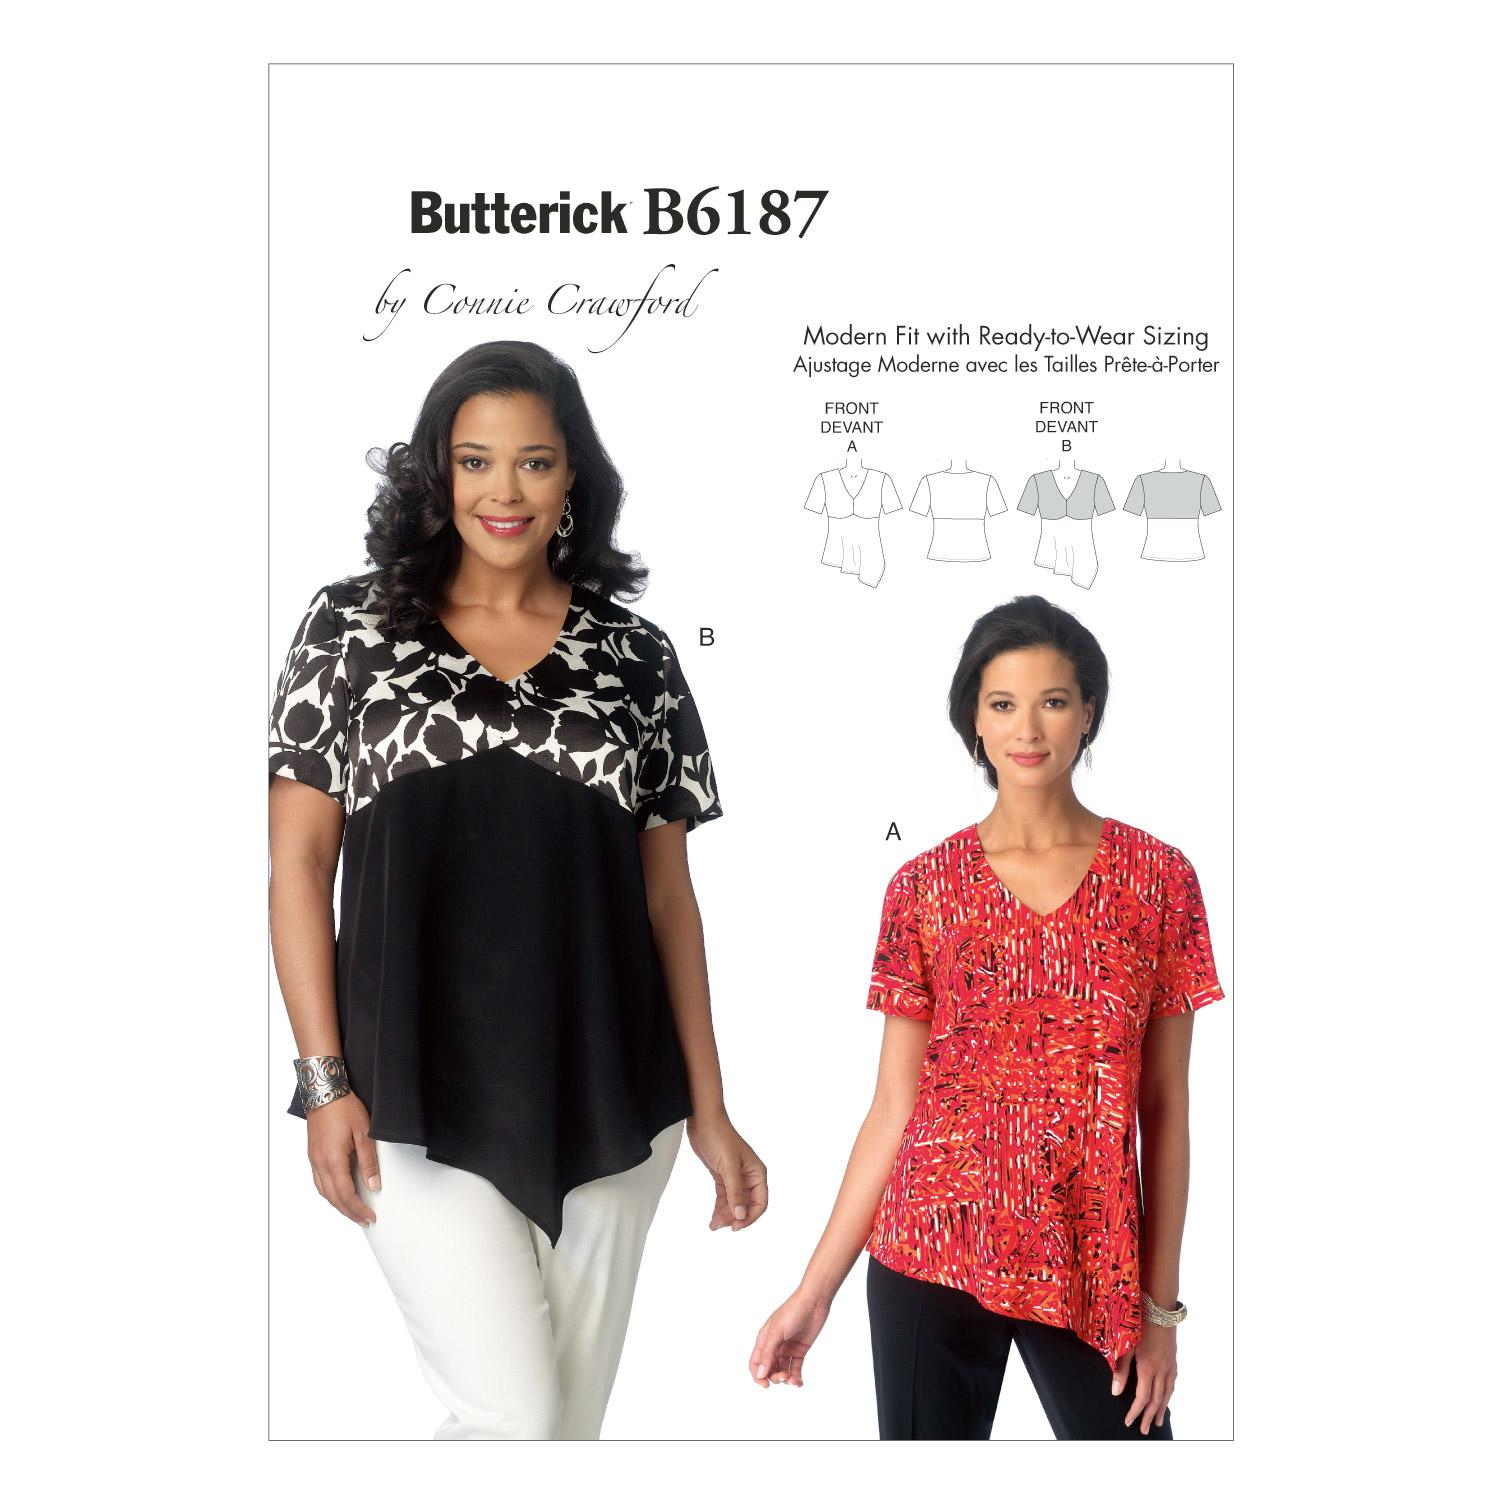 Butterick B6187 Misses'/Women's Top